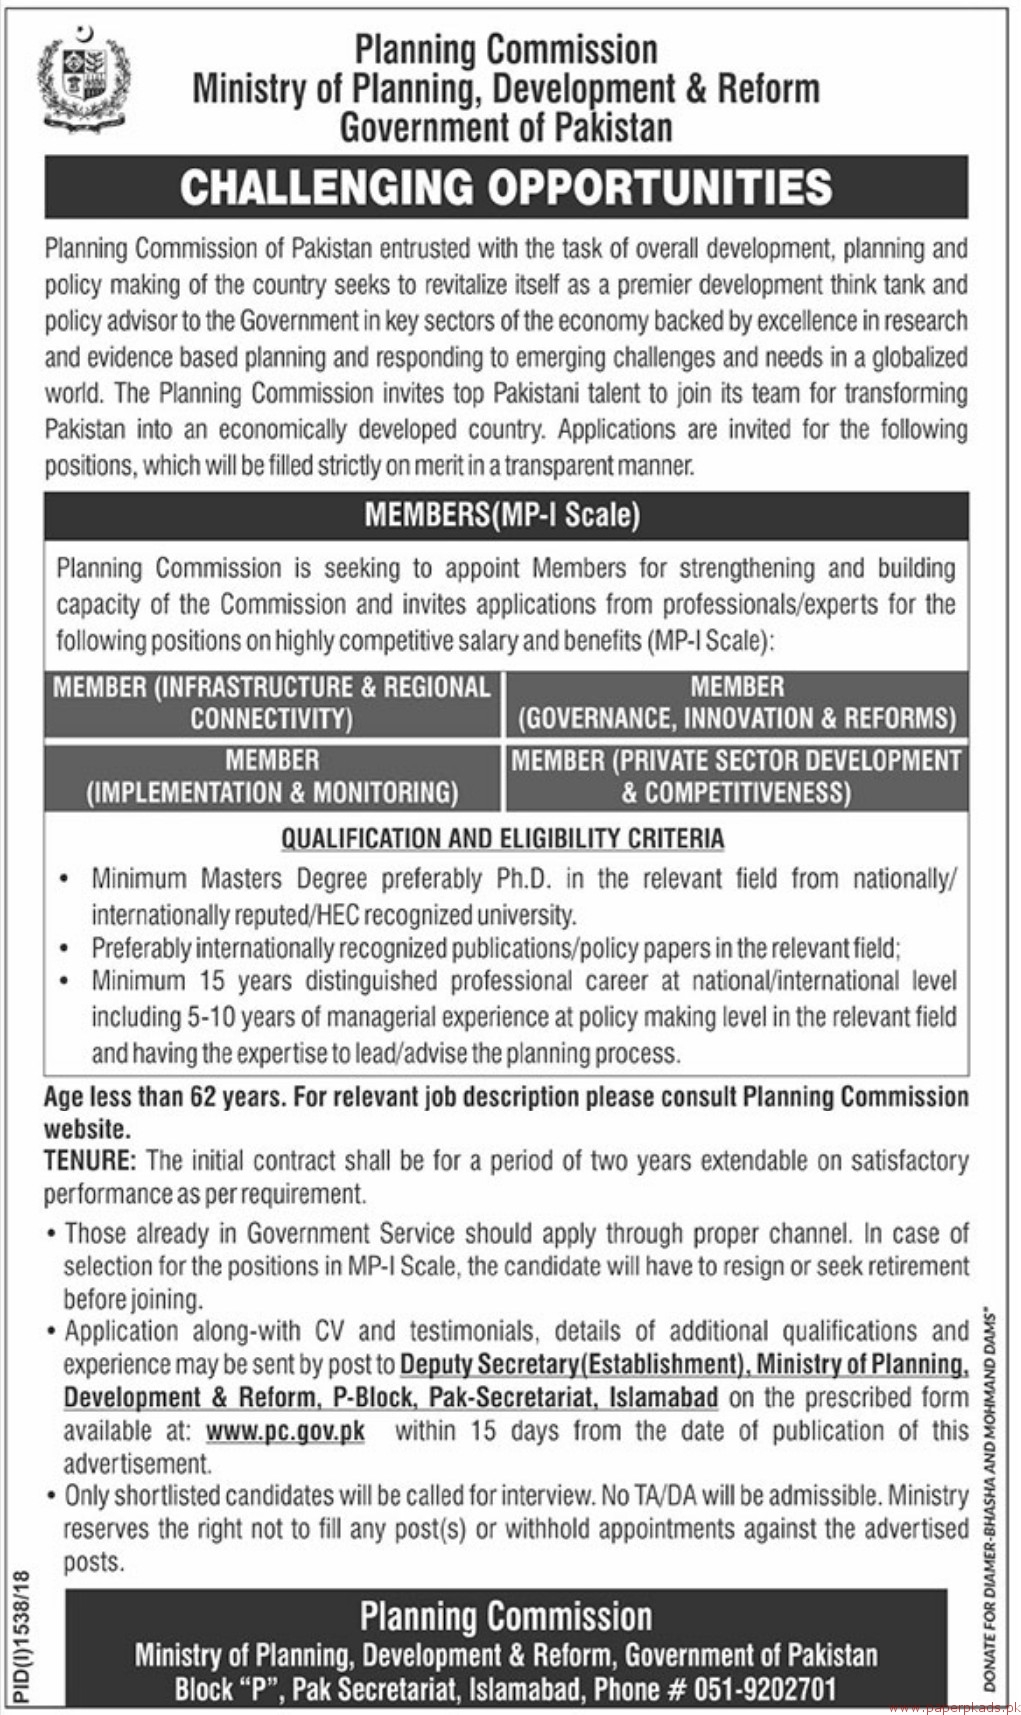 Planning Commission Ministry of Planning Development & Reform Jobs 2018 Latest